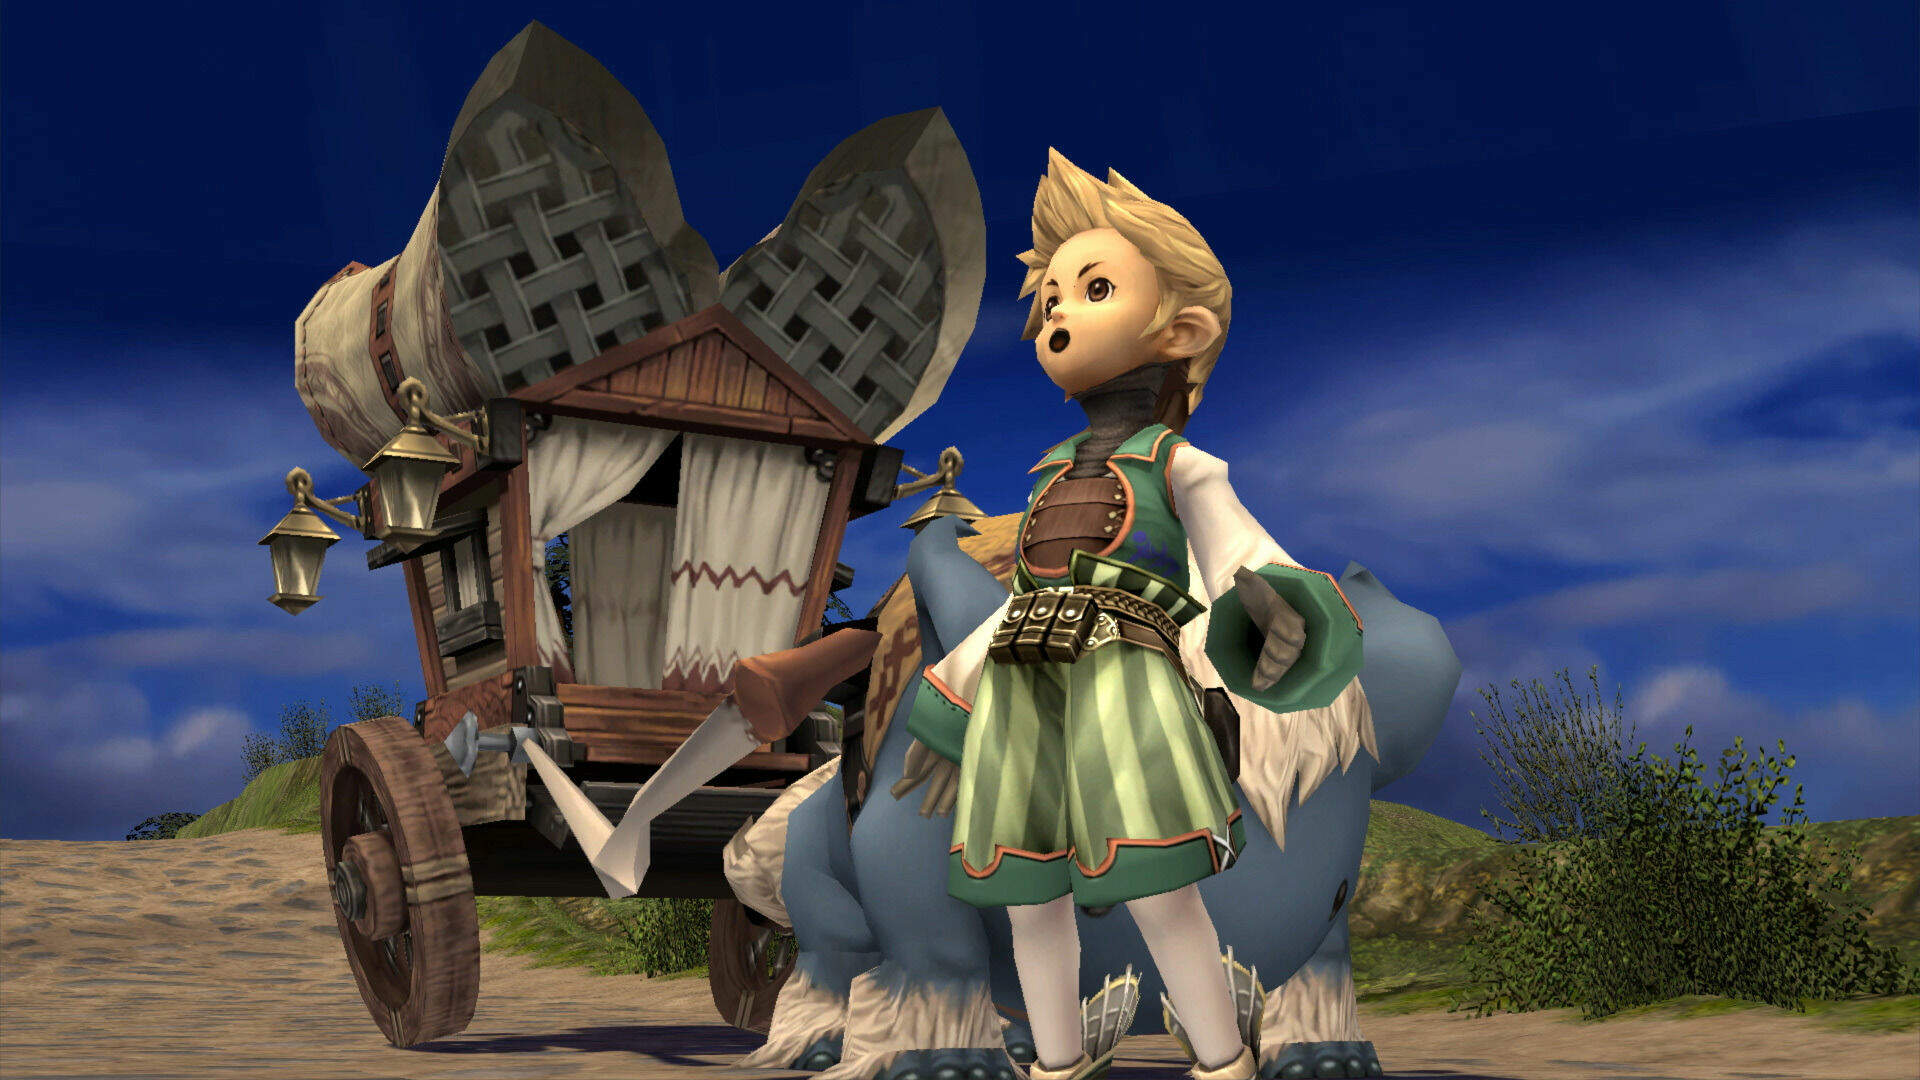 Final Fantasy: Crystal Chronicles Remaster's Demo Will Let Players Team Up With Full Game Owners